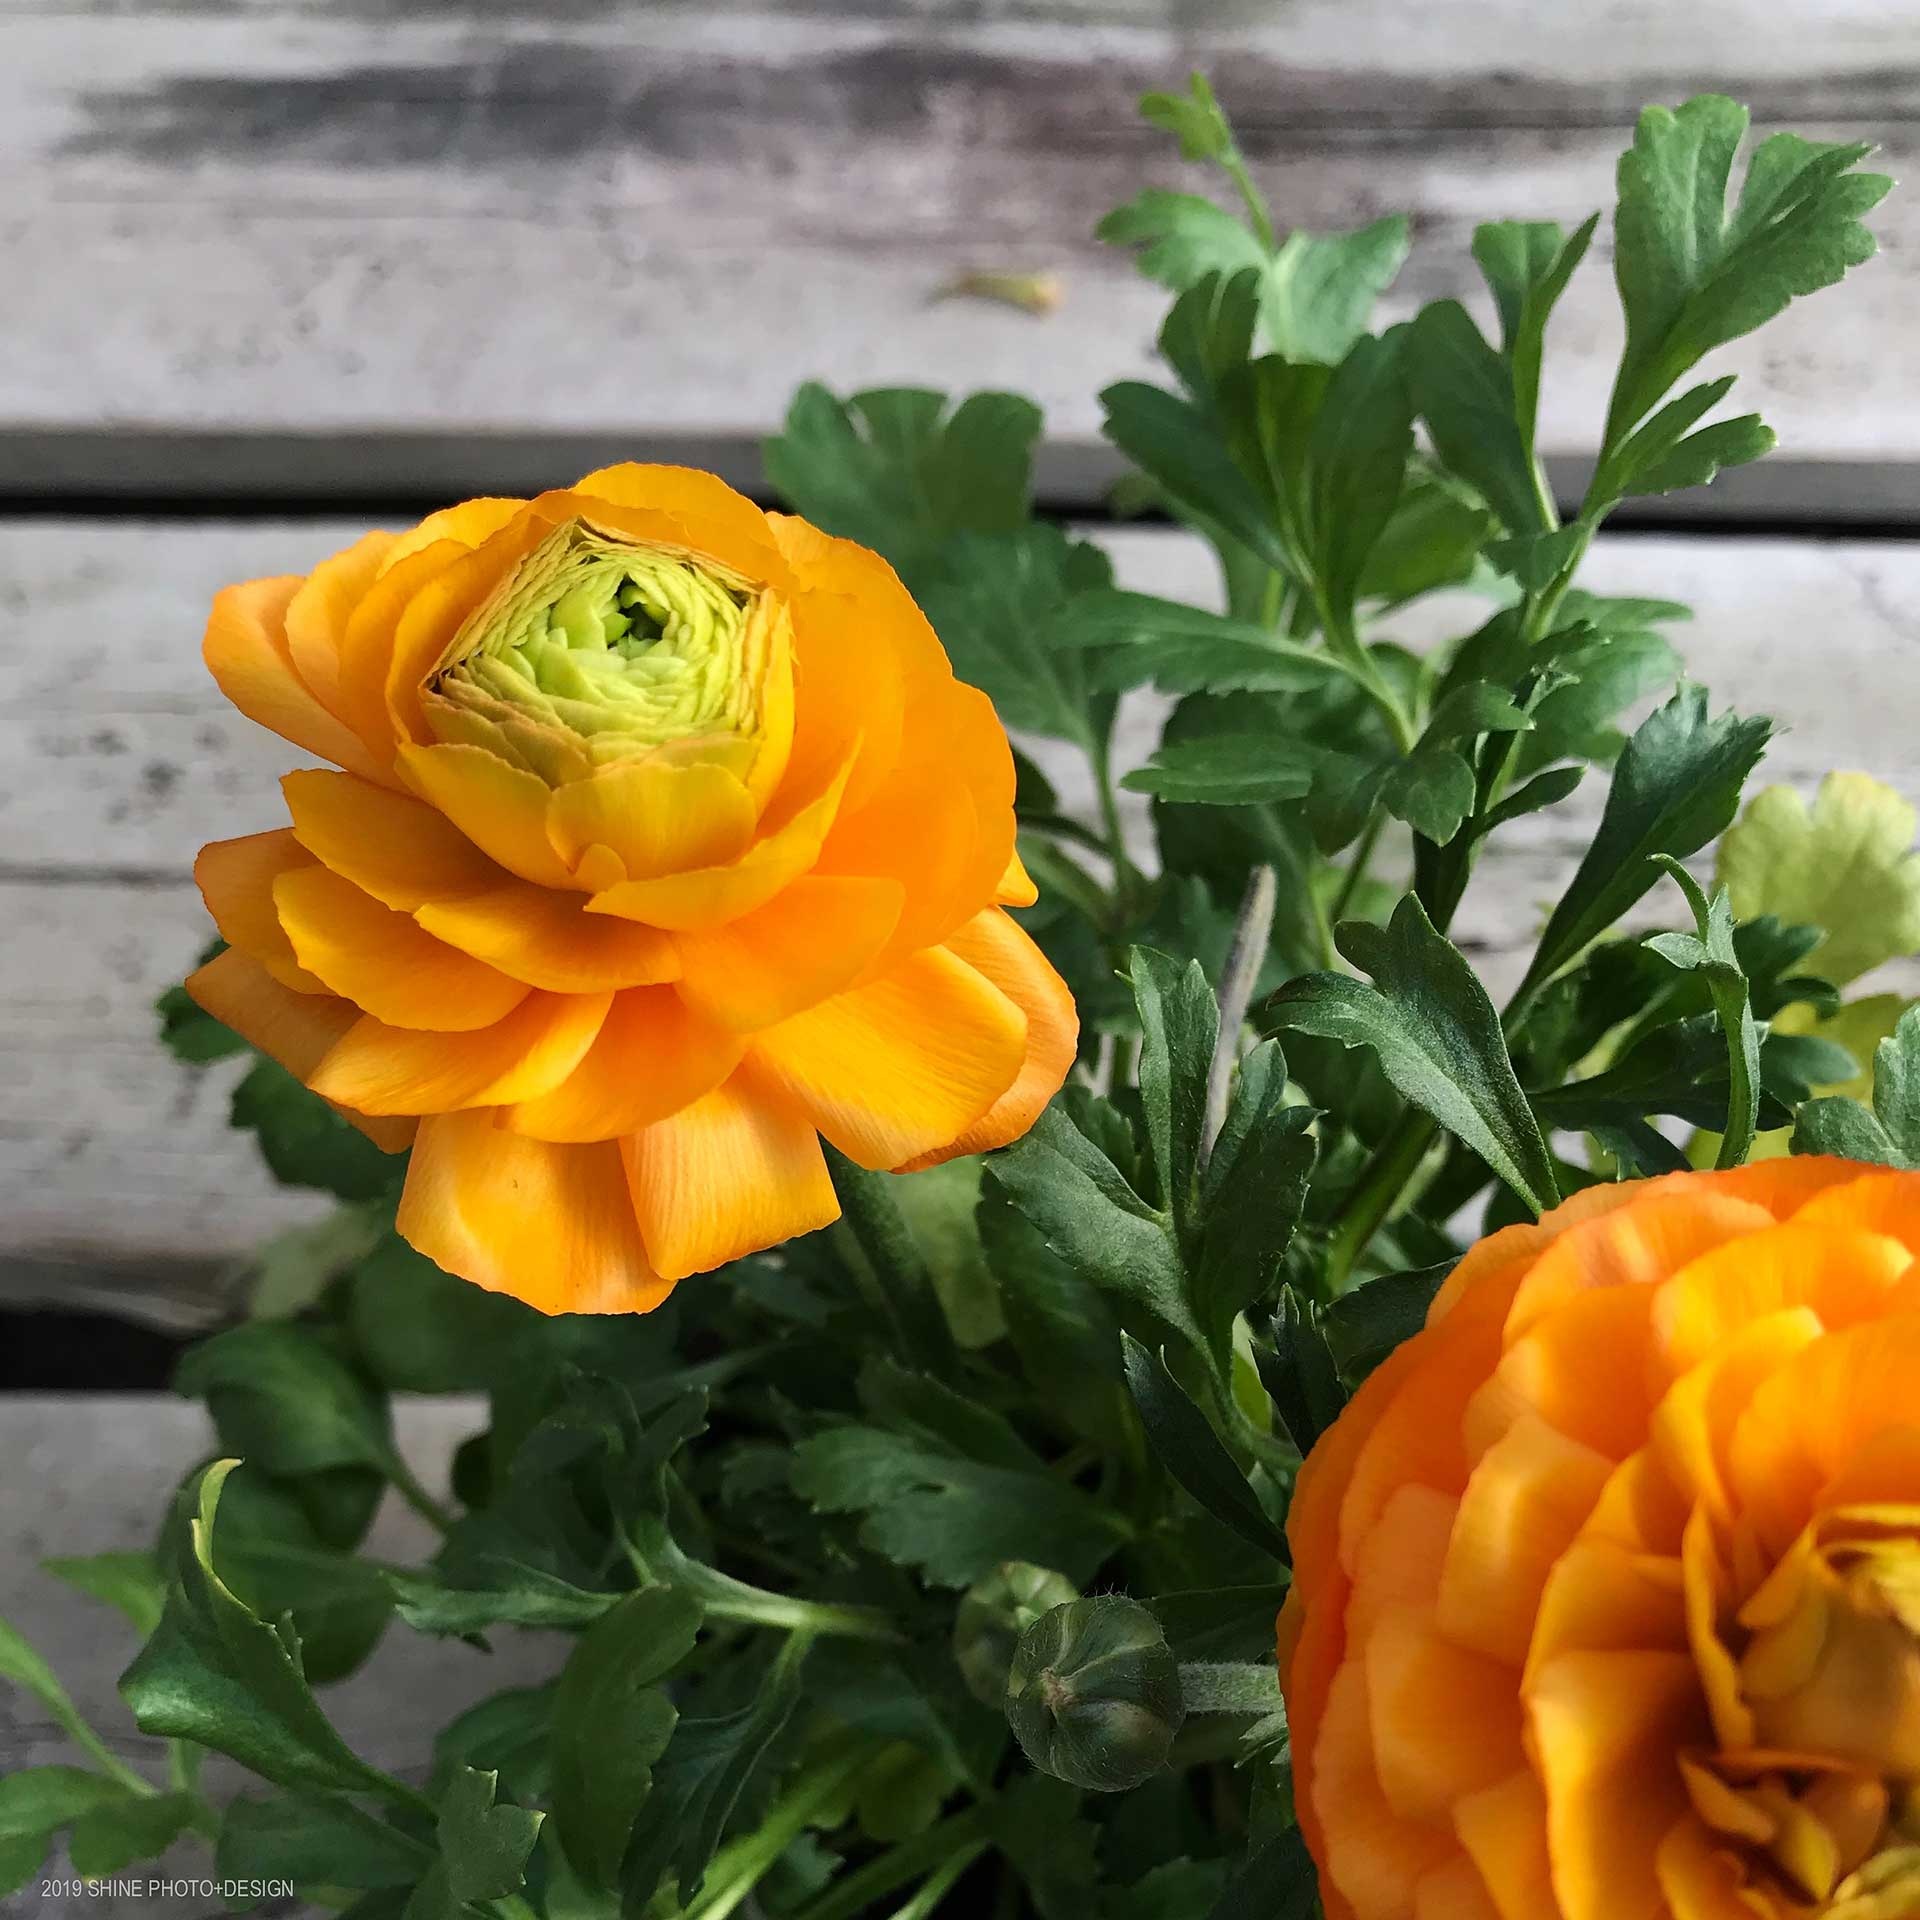 Ranunculus by Shine Photo Design